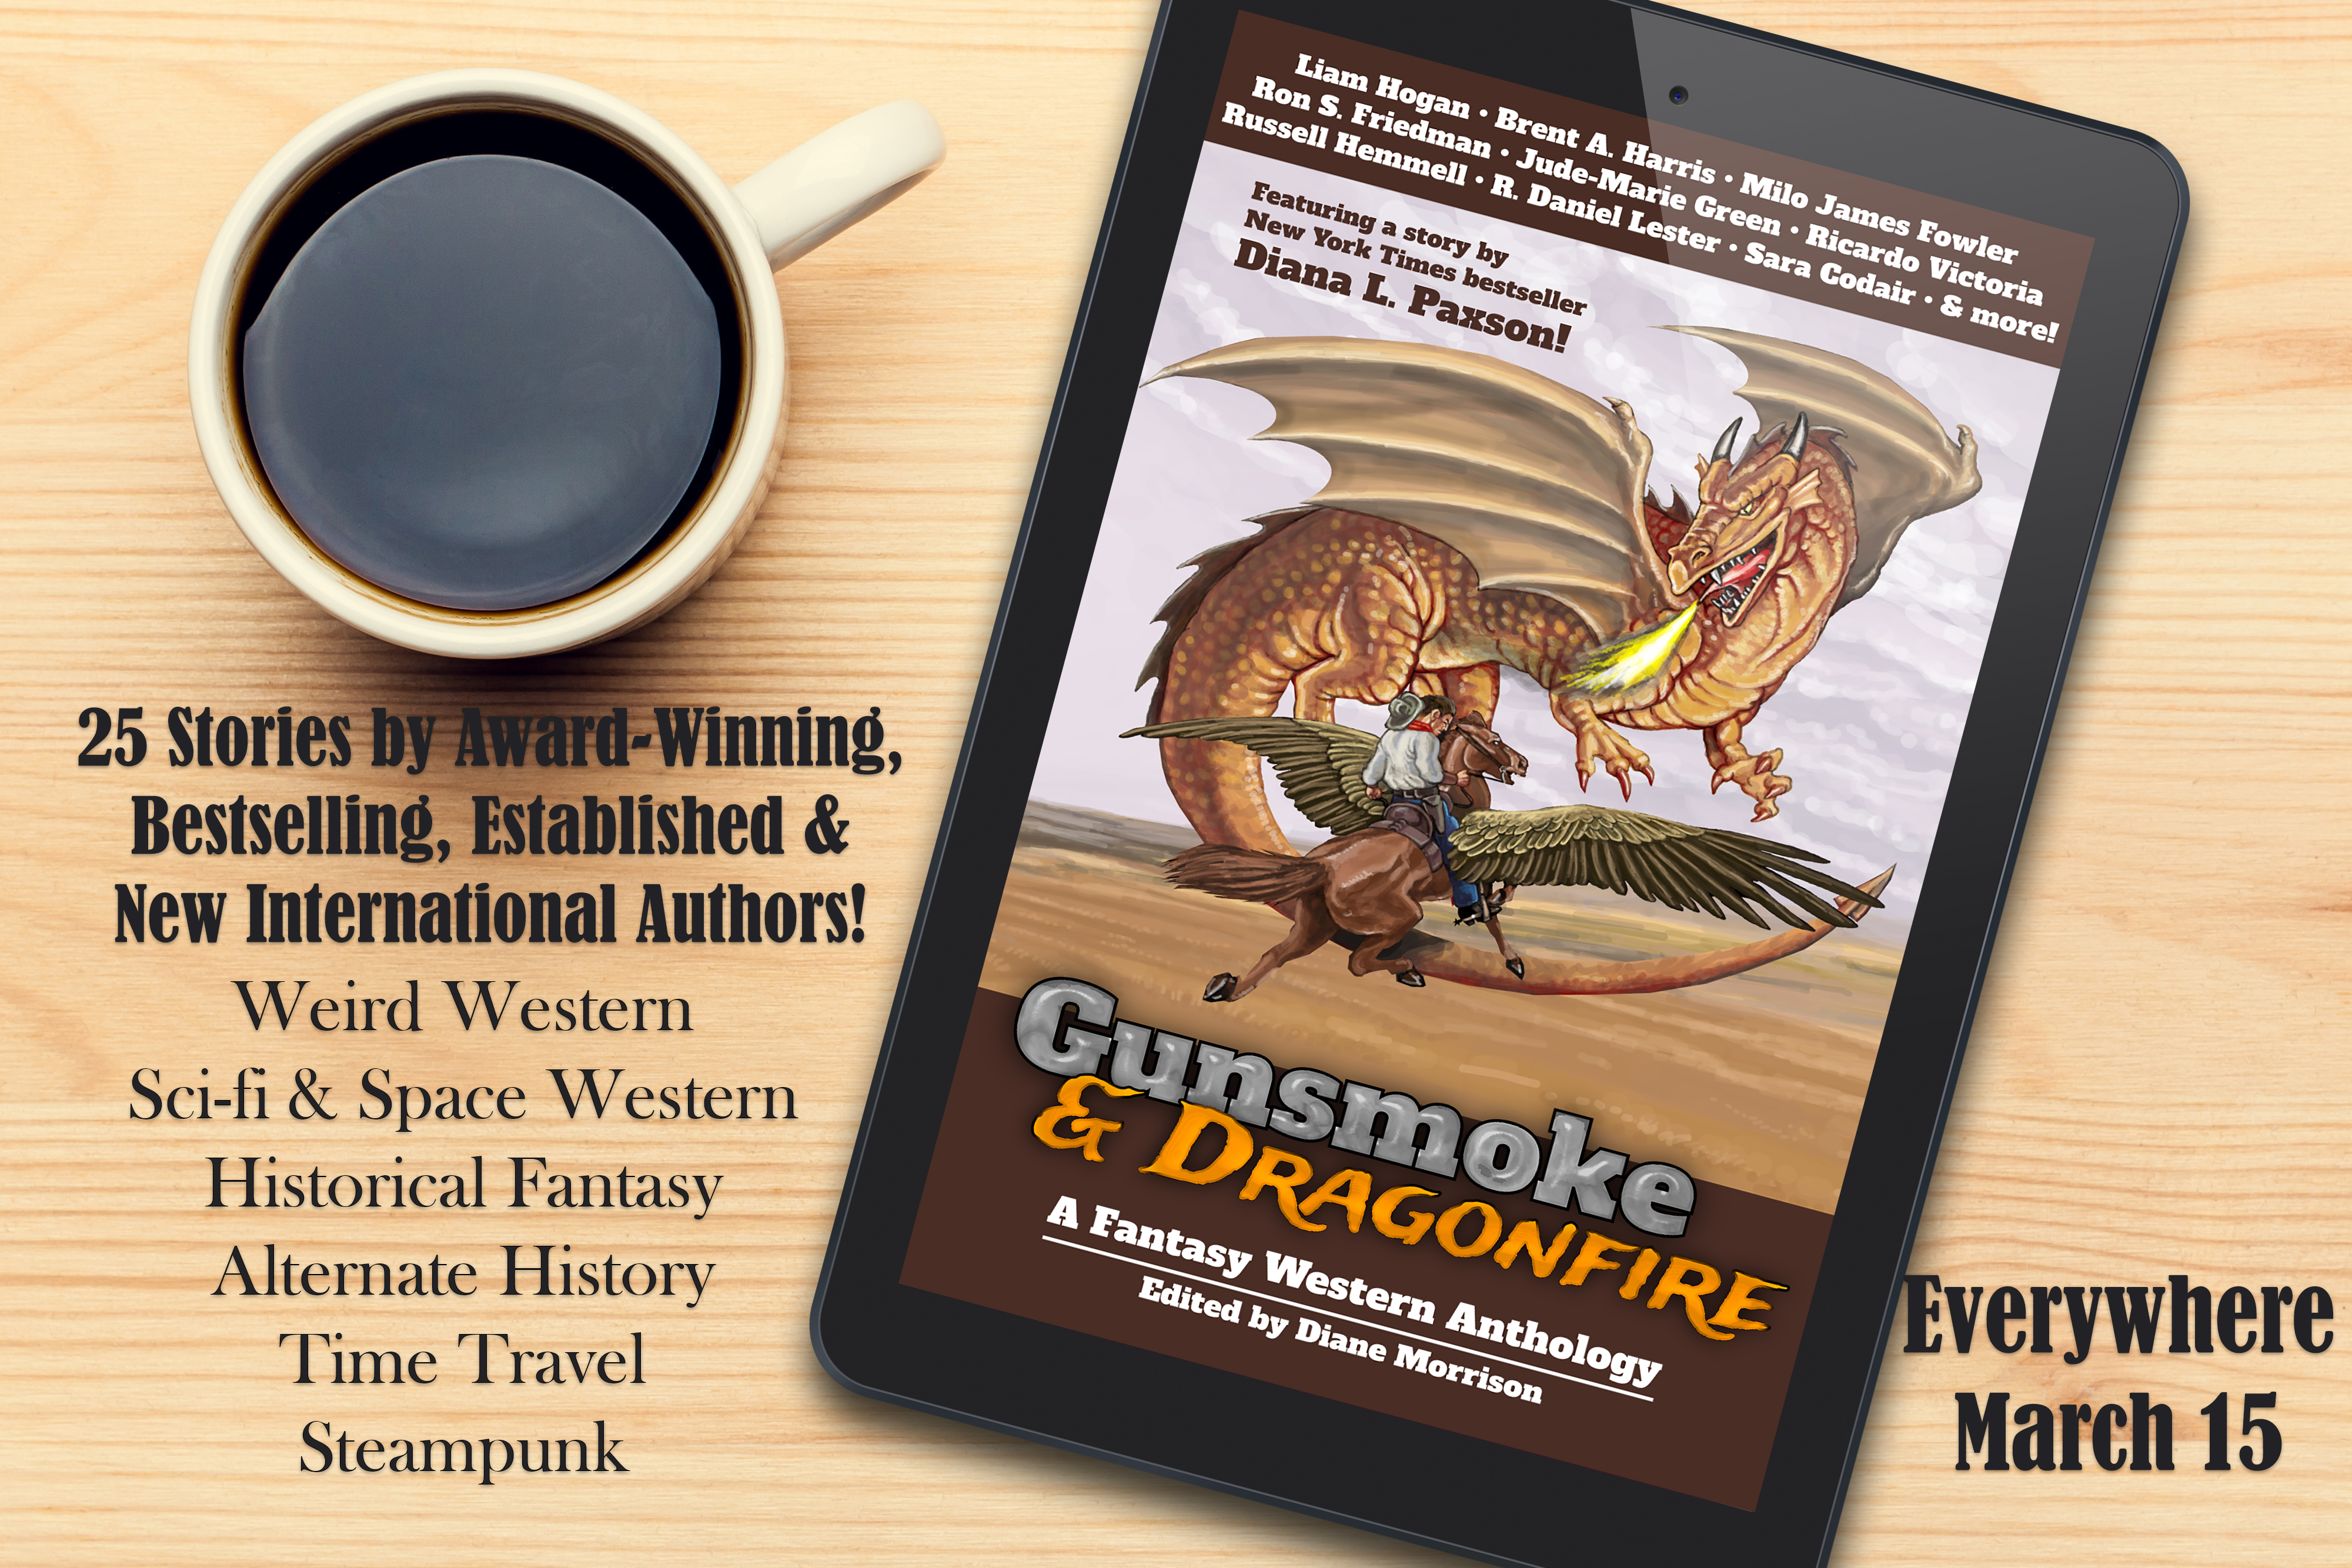 Good Reviews for Gunsmoke & Dragonfire